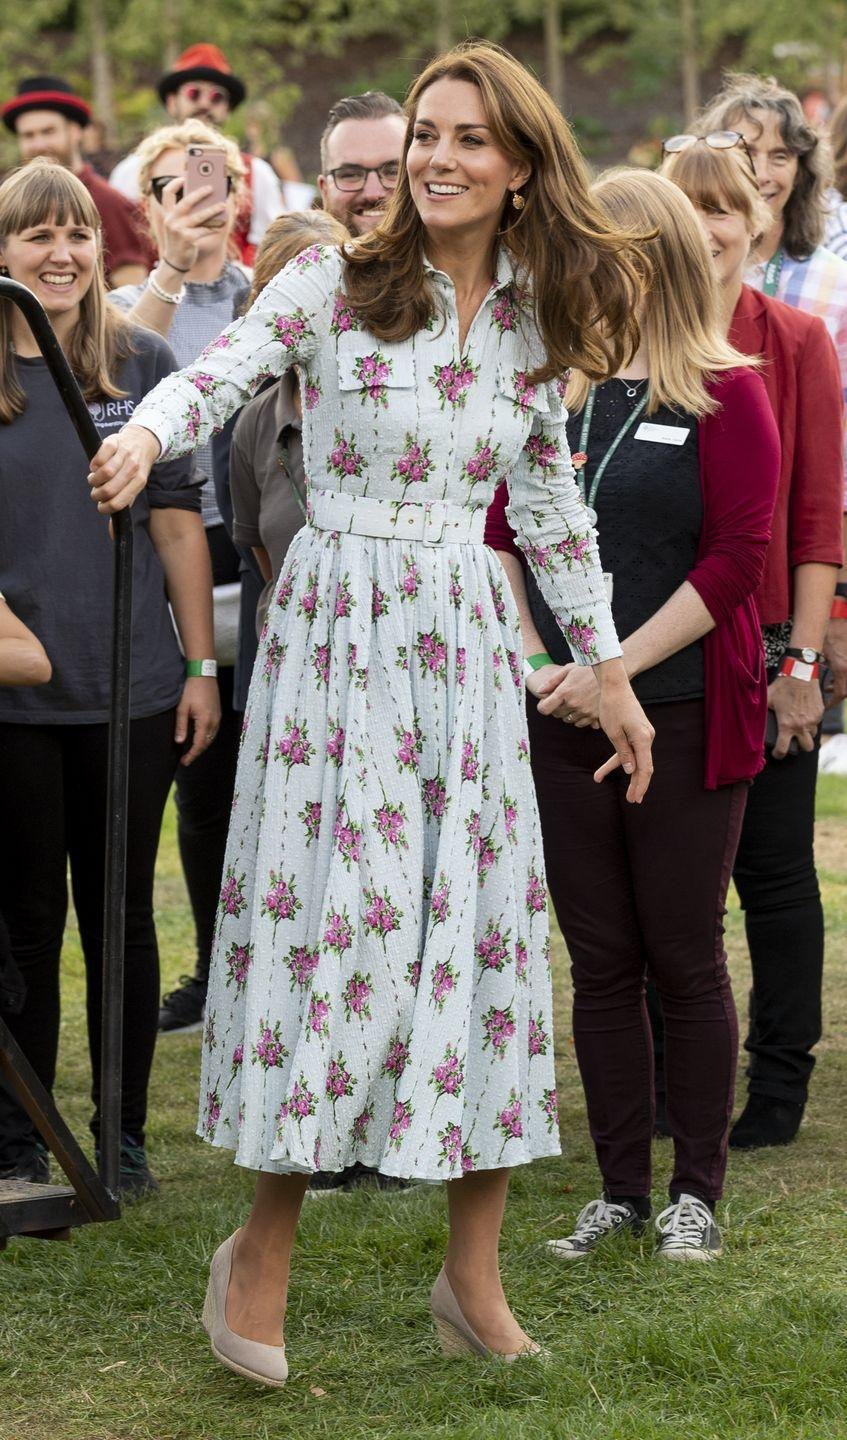 """<p>The Duchess of Cambridge attends the """"Back to Nature"""" festival in RHS Garden at Wisley in a dress by <a href=""""https://www.matchesfashion.com/womens/designers/emilia-wickstead"""" rel=""""nofollow noopener"""" target=""""_blank"""" data-ylk=""""slk:Emilia Wickstead"""" class=""""link rapid-noclick-resp"""">Emilia Wickstead</a>.</p>"""